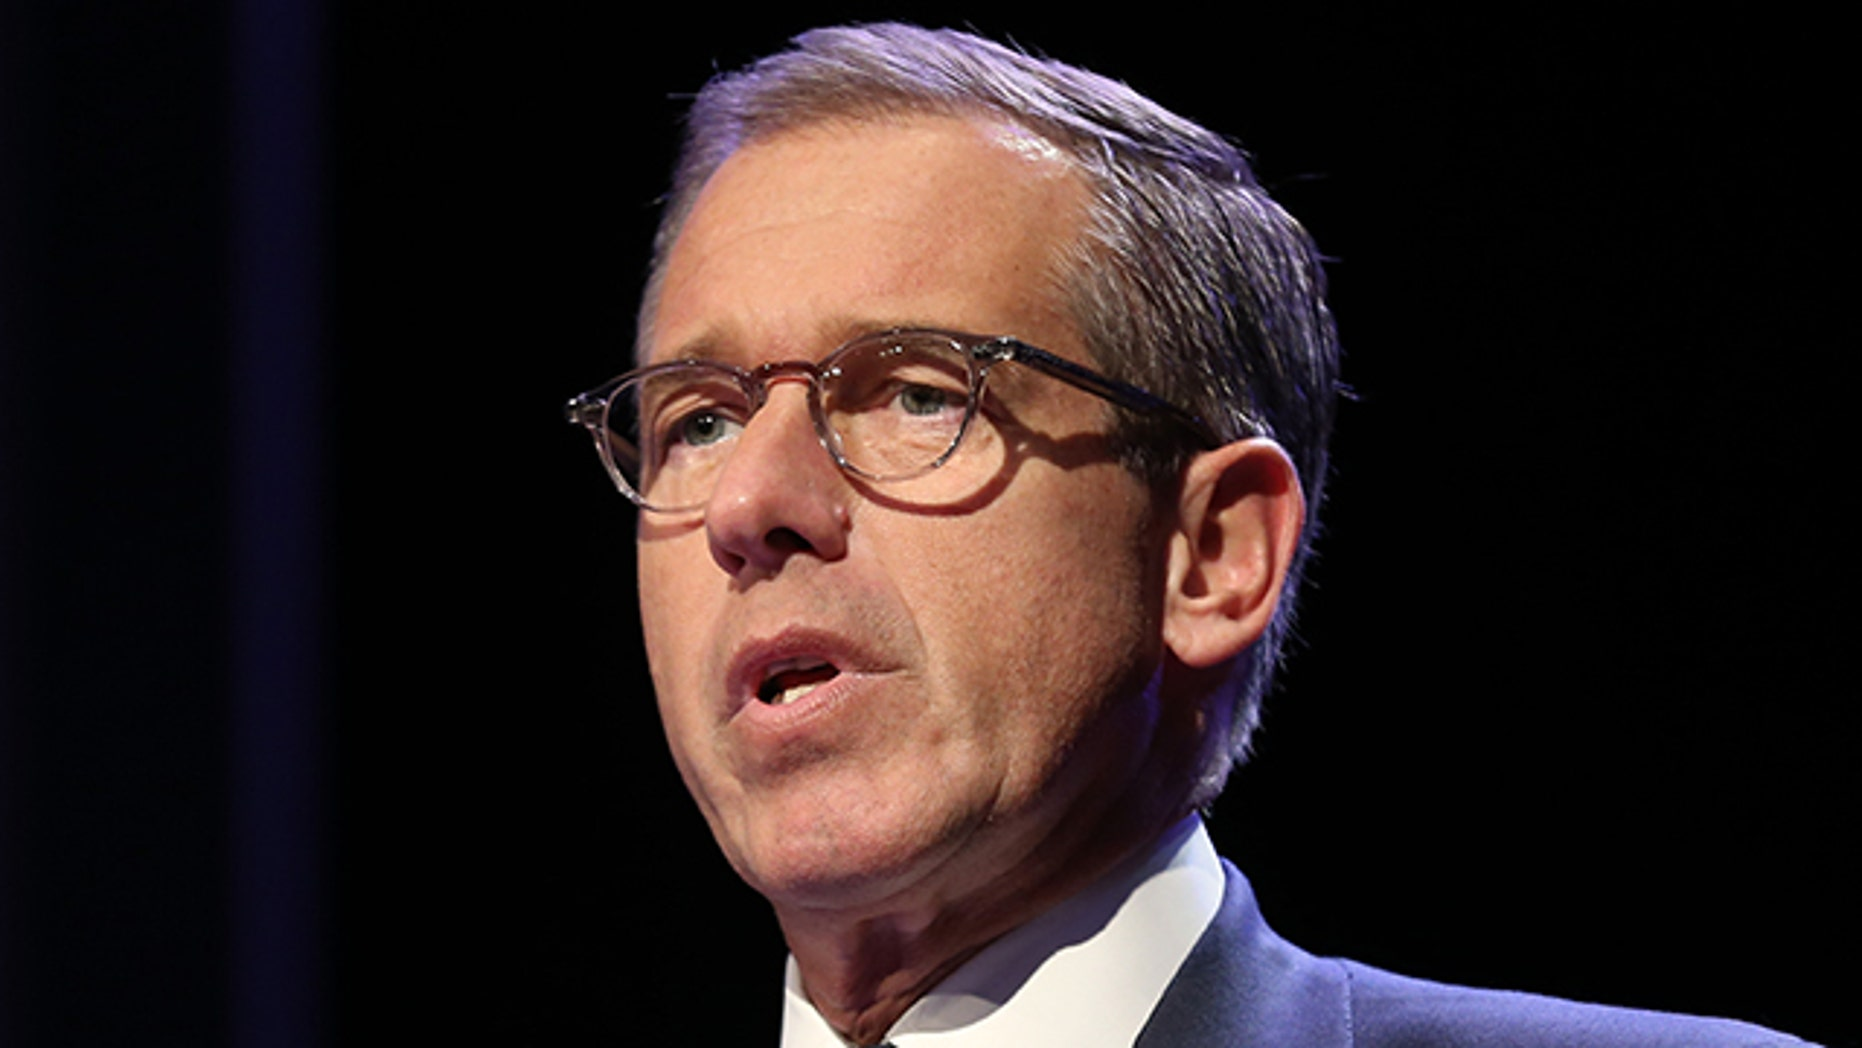 March 30, 2014. Emmy Award-winning anchor & managing editor of NBC Nightly News  Brian Williams speaks at the 57th Annual New York Emmy awards at Marriott Marquis Times Square in New York.